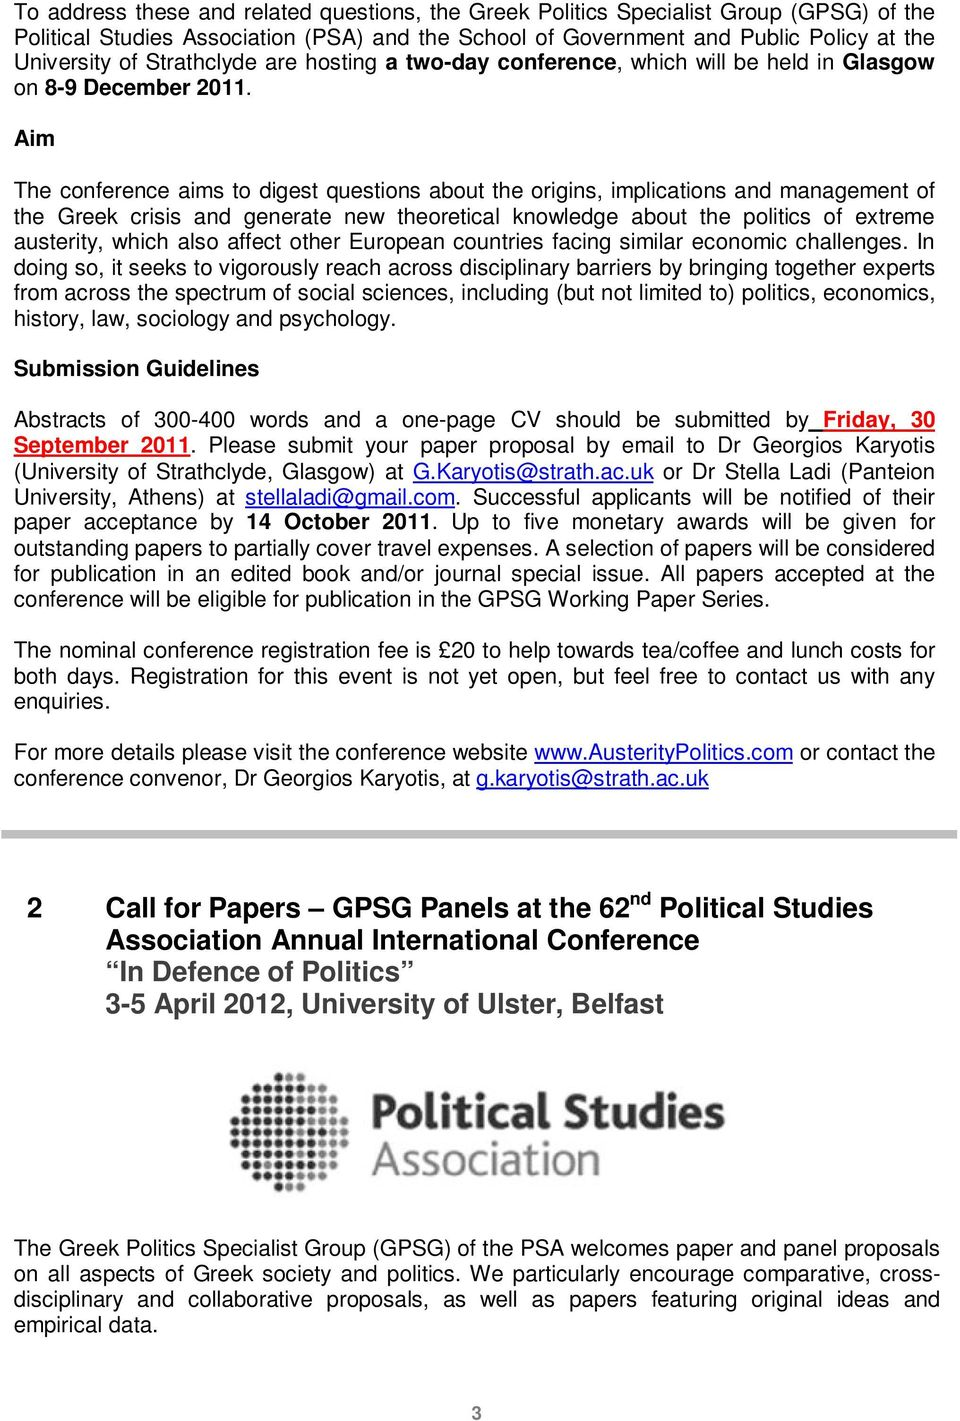 Aim The conference aims to digest questions about the origins, implications and management of the Greek crisis and generate new theoretical knowledge about the politics of extreme austerity, which